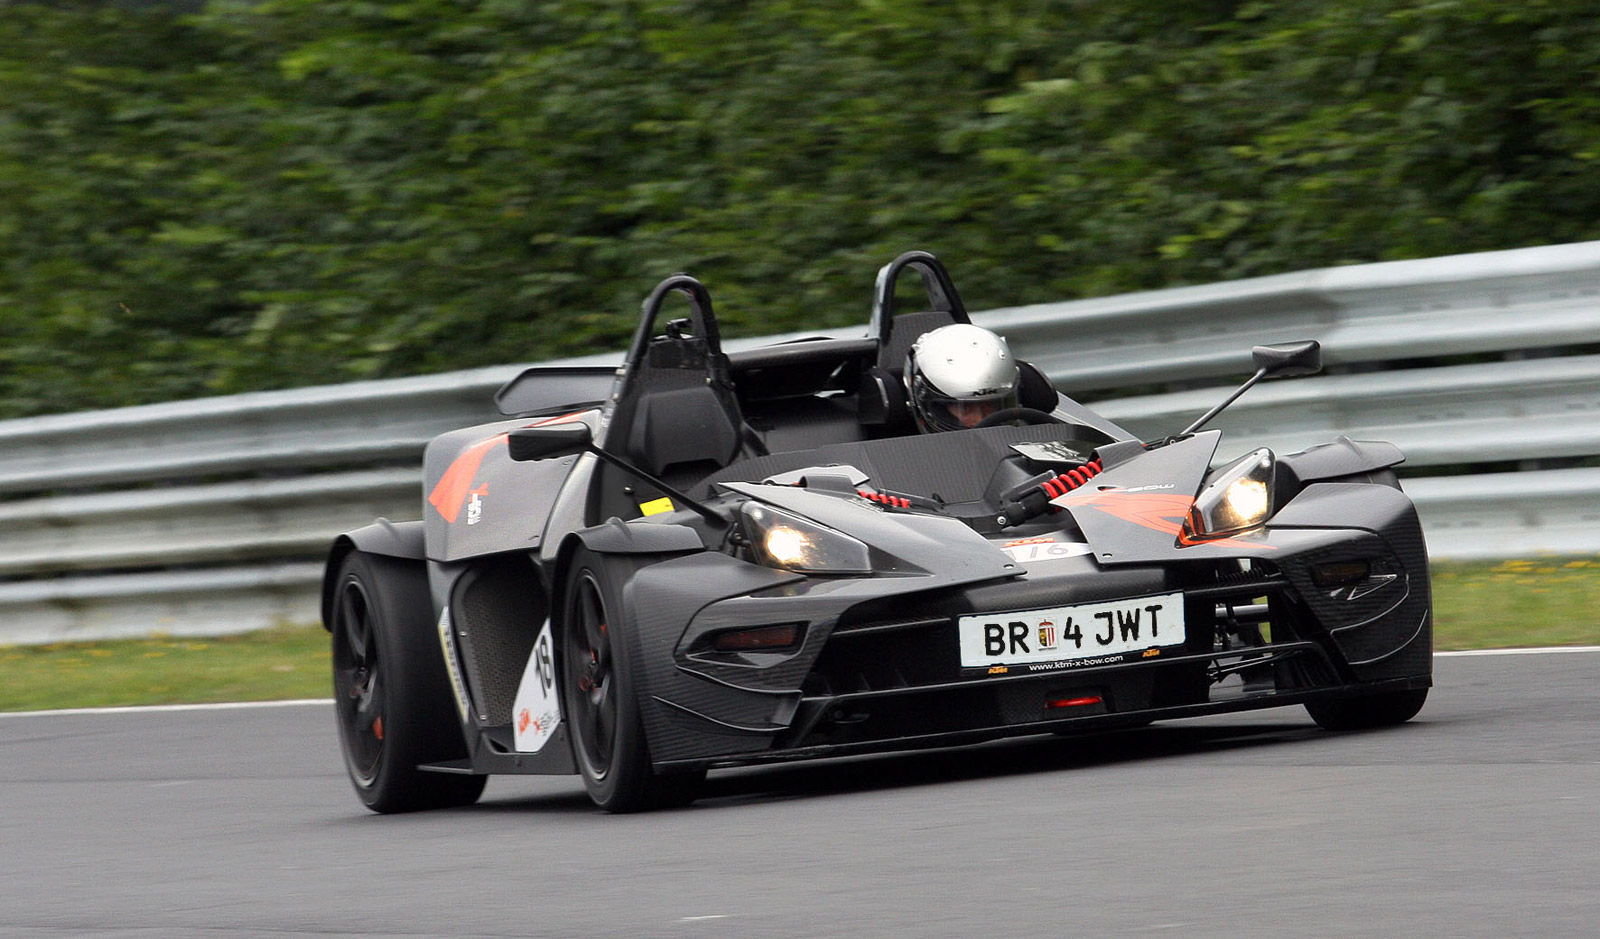 watch ktm s x bow rr lap the ring in 7 25. Black Bedroom Furniture Sets. Home Design Ideas